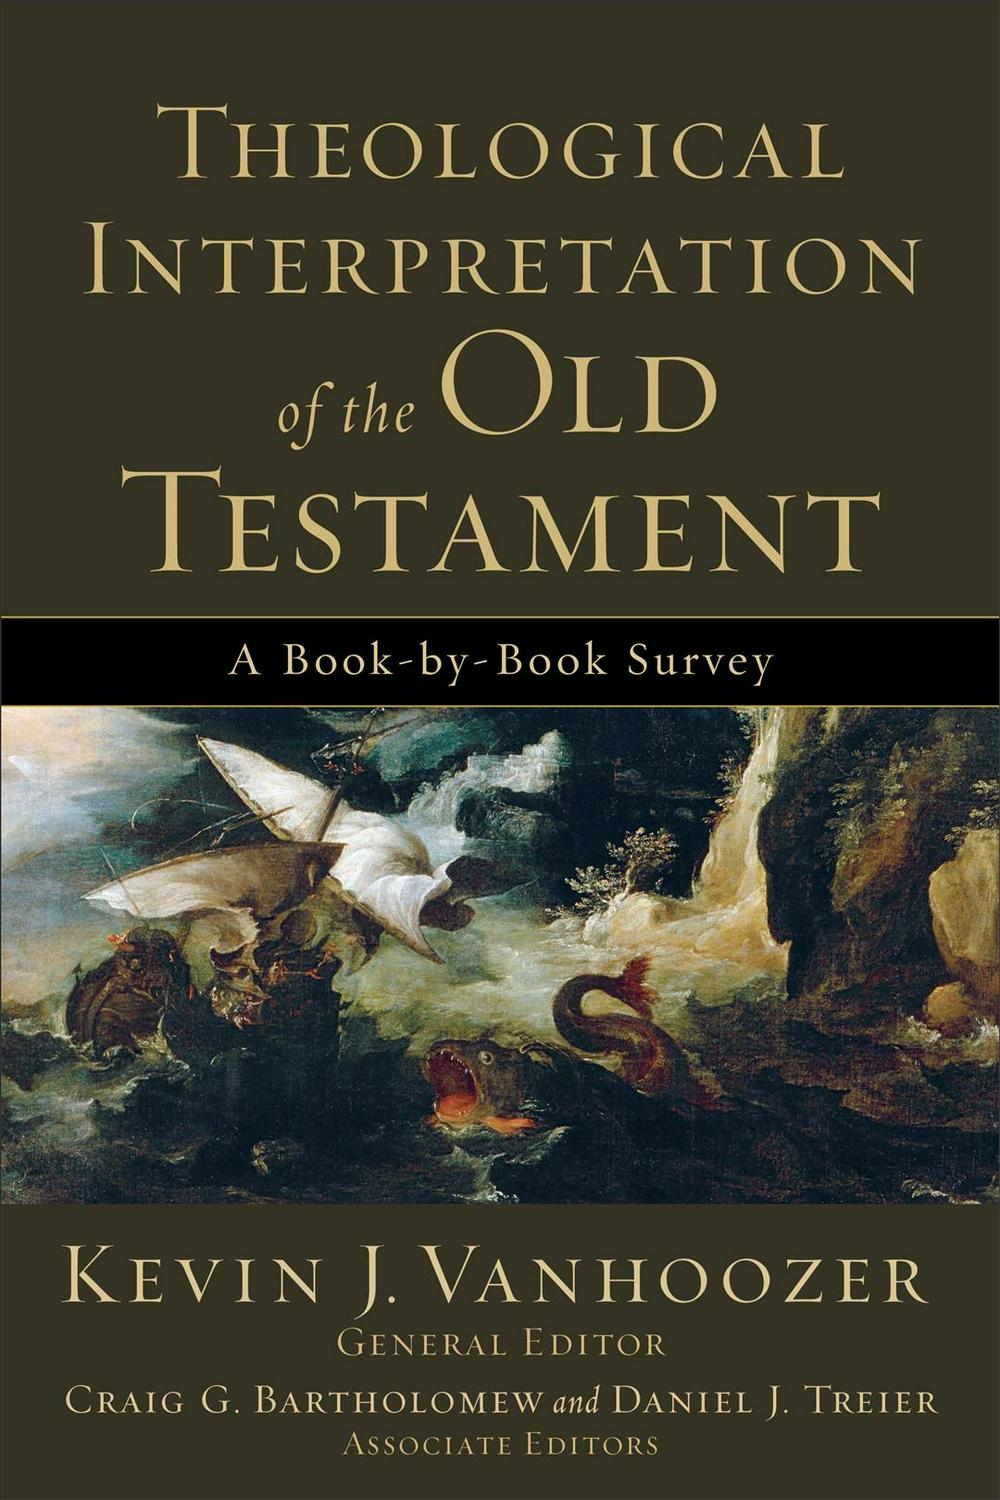 Theological Interpretation of the Old Testament: A Book-By-Book Survey by MR Kevin J Vanhoozer, ISBN: 9780801036248